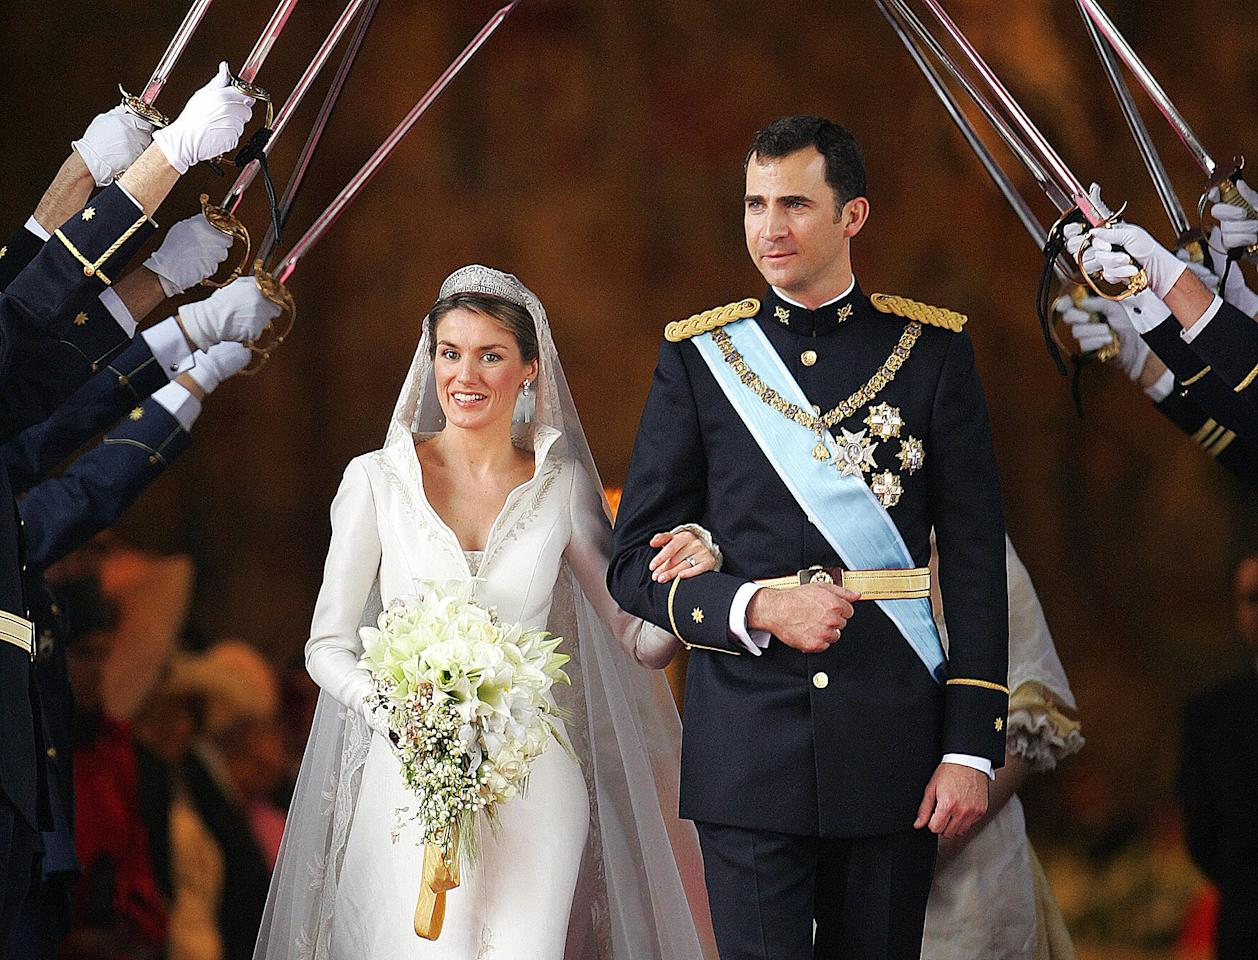 """King Felipe and <a rel=""""nofollow"""" href=""""https://people.com/tag/queen-letizia/"""">Queen Letizia</a> of Spain – then Crown Prince Felipe and Letizia Ortiz – were married on May 22, 2004, at Madrid's Almudena Cathedral."""